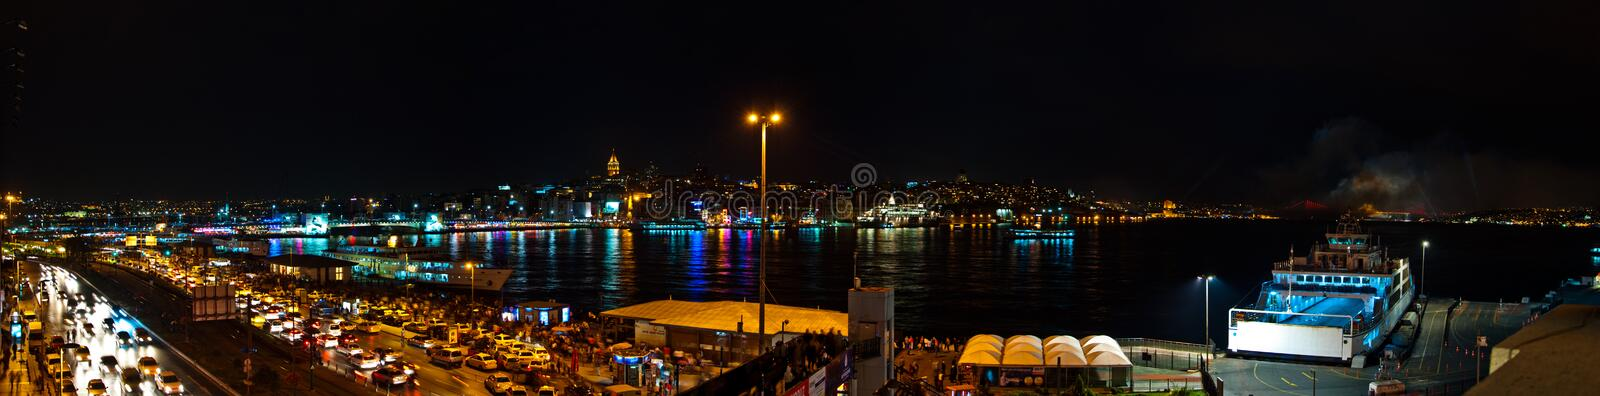 Night Ctiy crowed people stock images